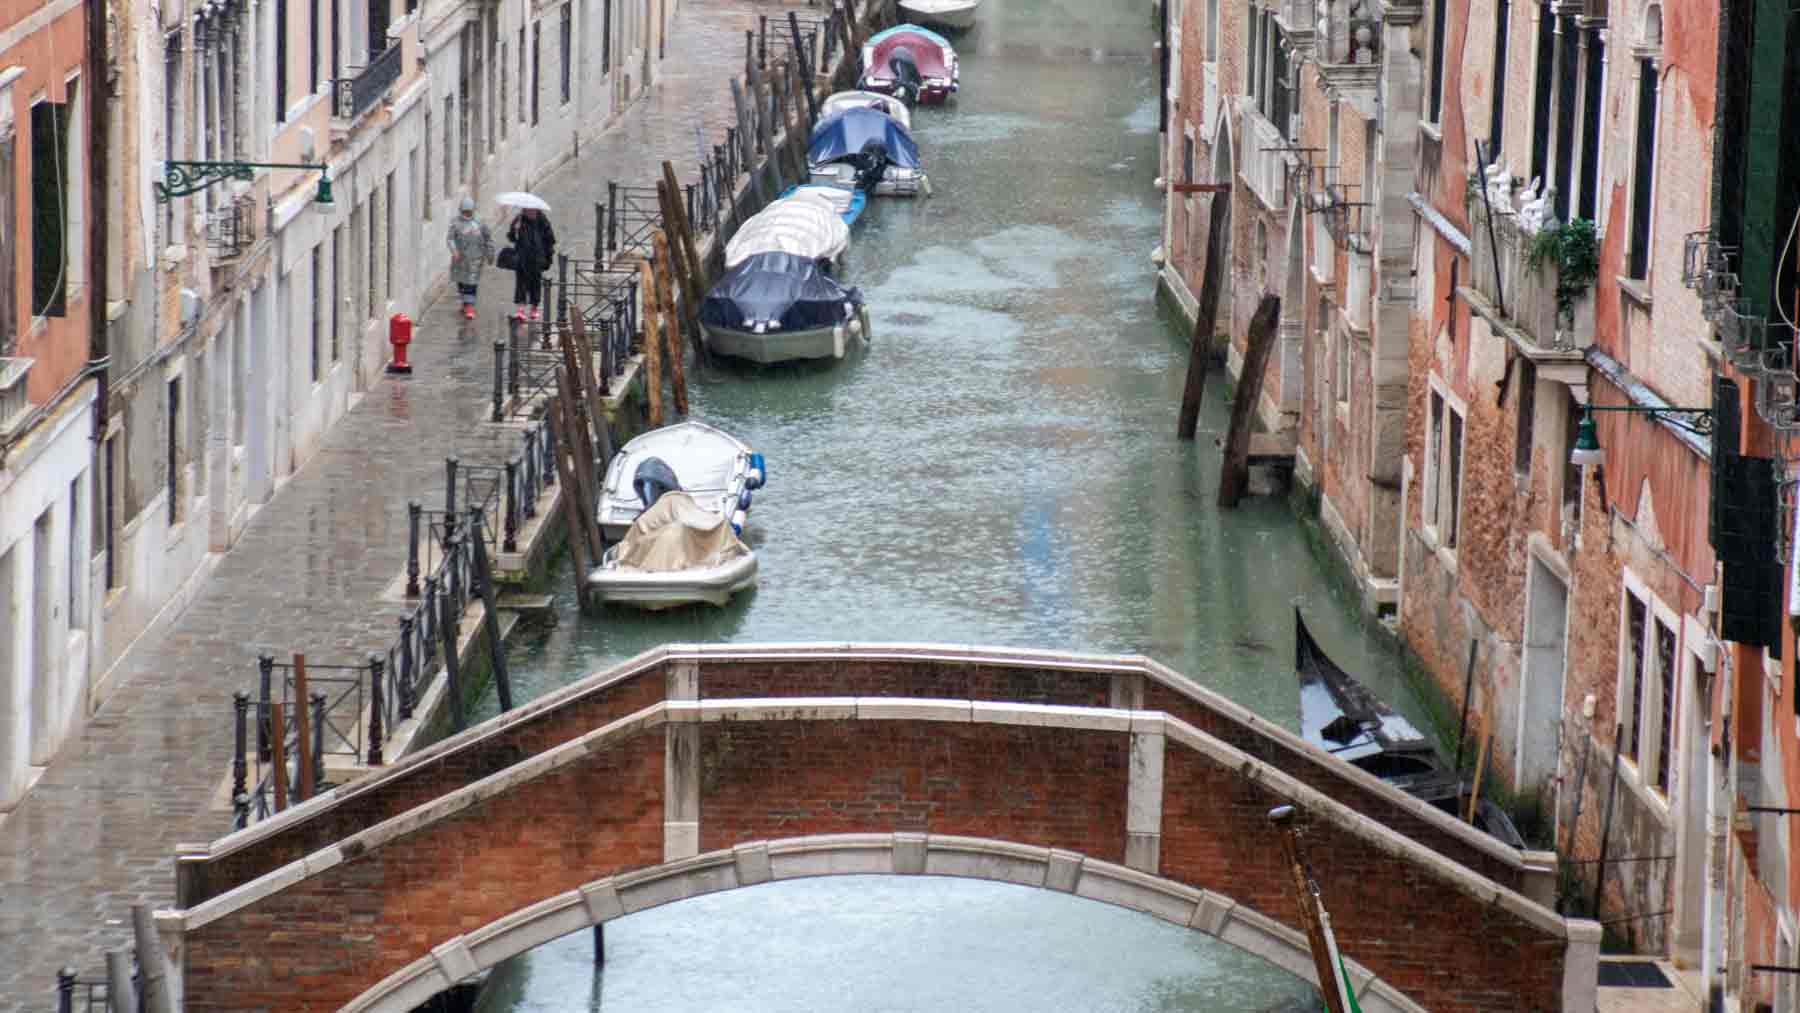 Rain on a canal in Venice, people are walking with umbrellas